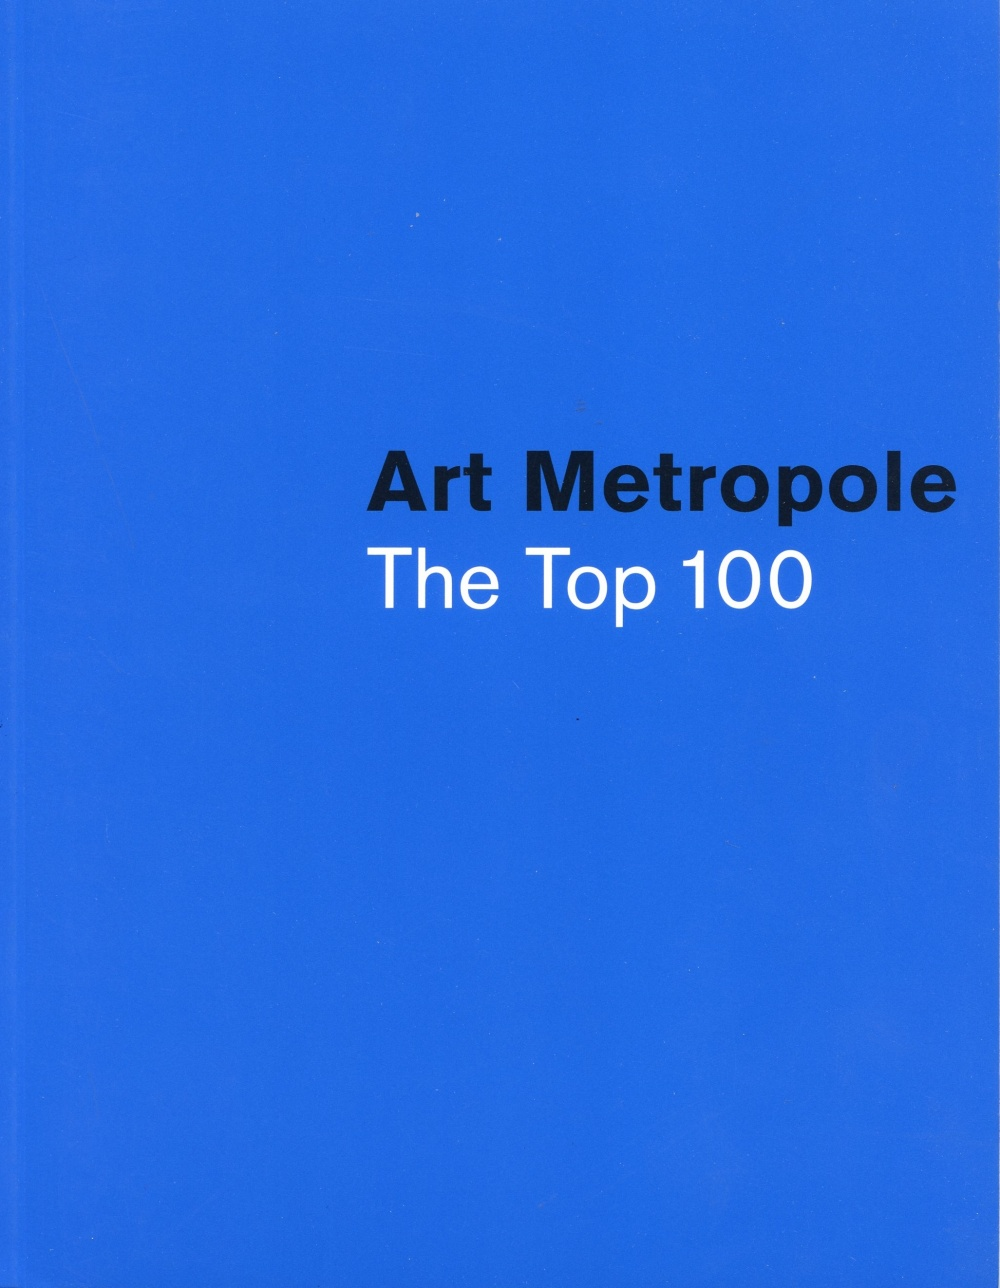 The top 100